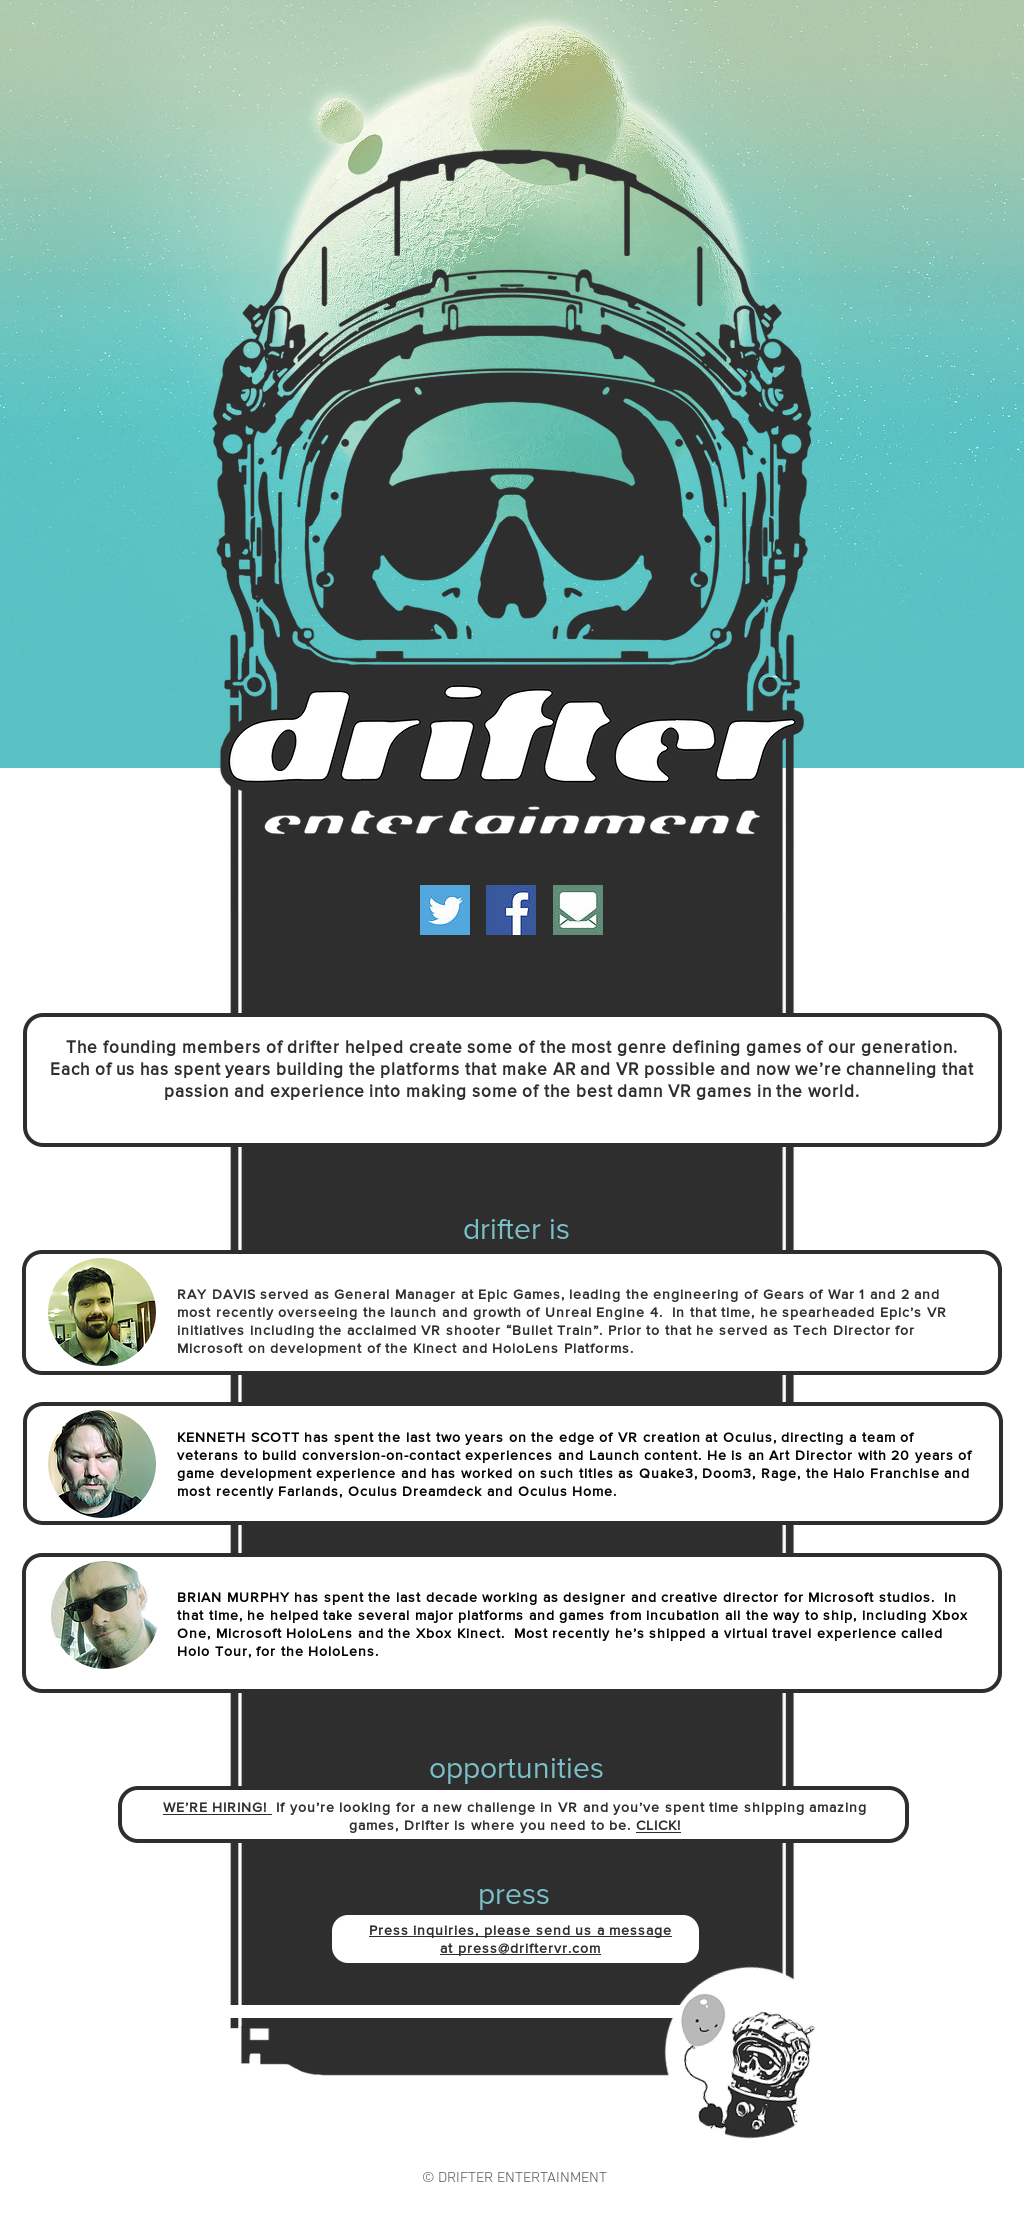 Drifter Entertainment Competitors, Revenue and Employees